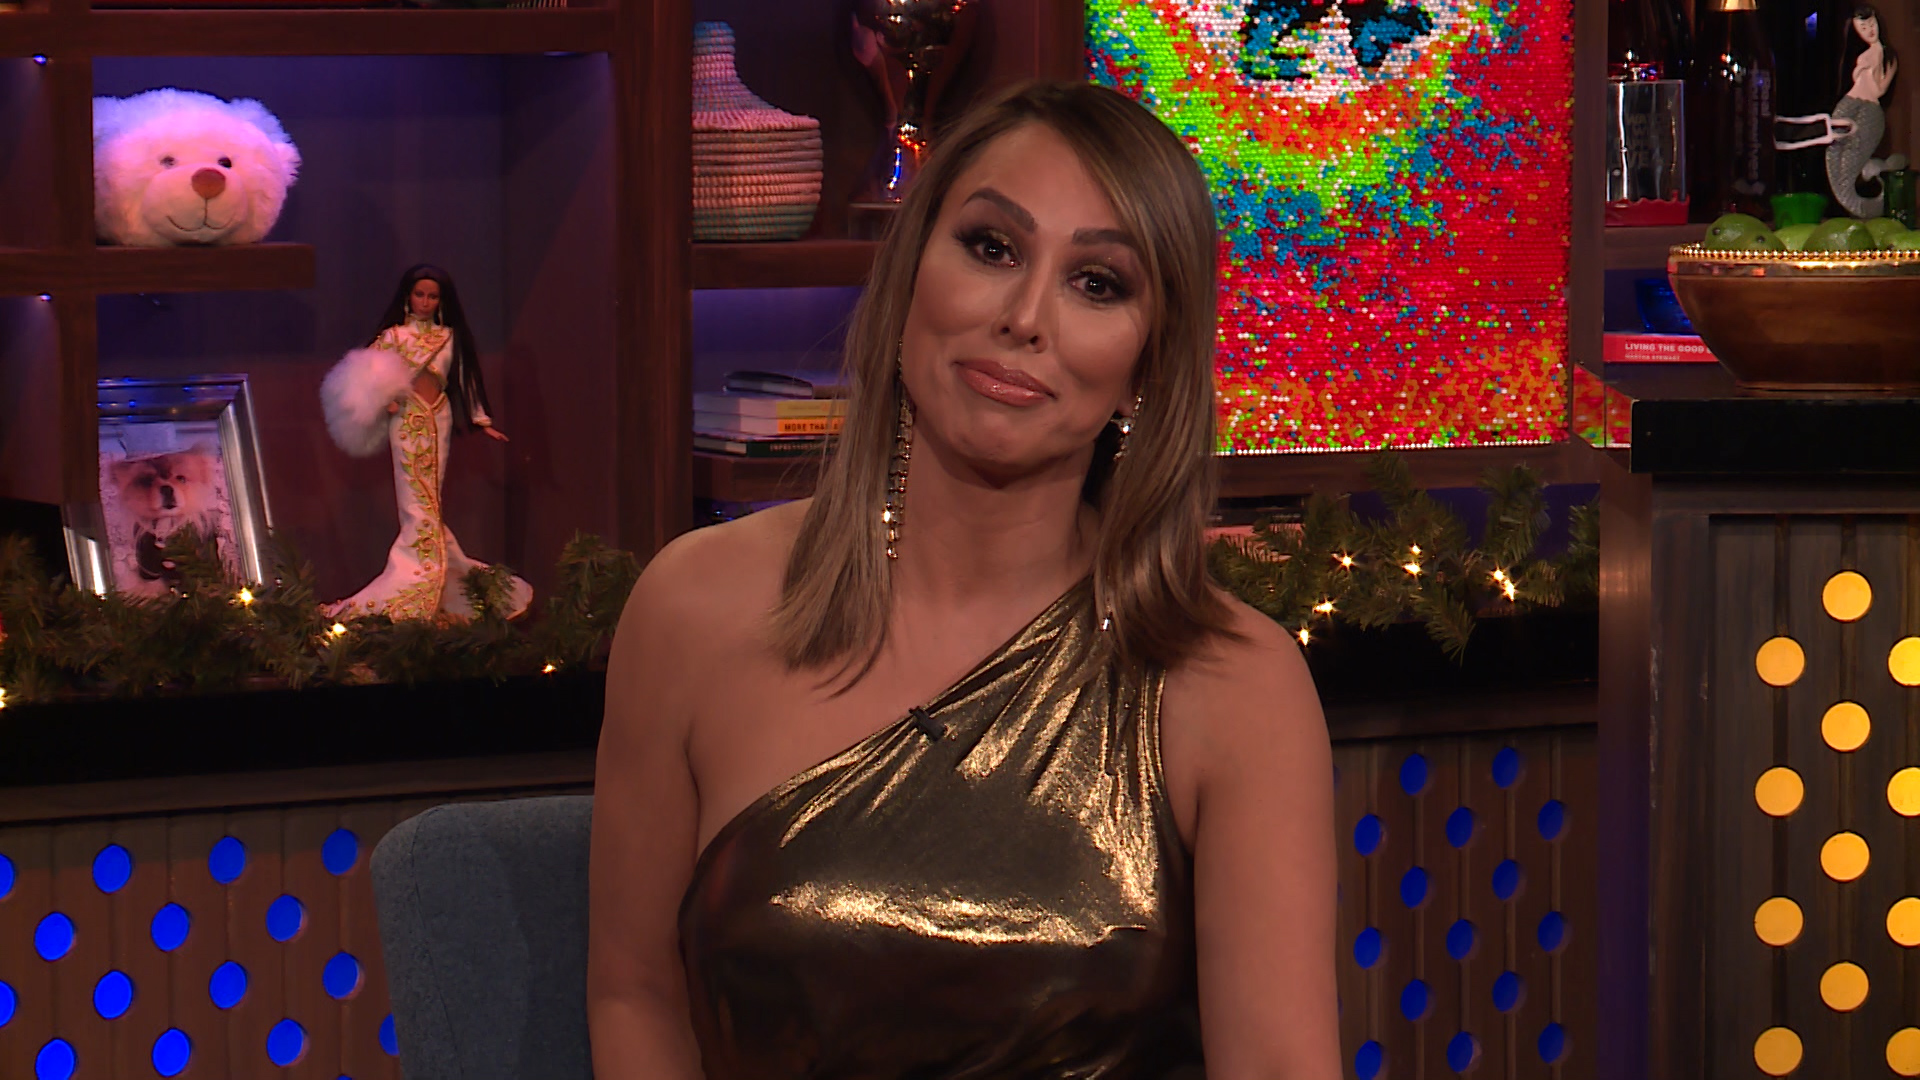 Kelly Dodd Fiance Rick Leventhal Find Possible Wedding Venue The Daily Dish